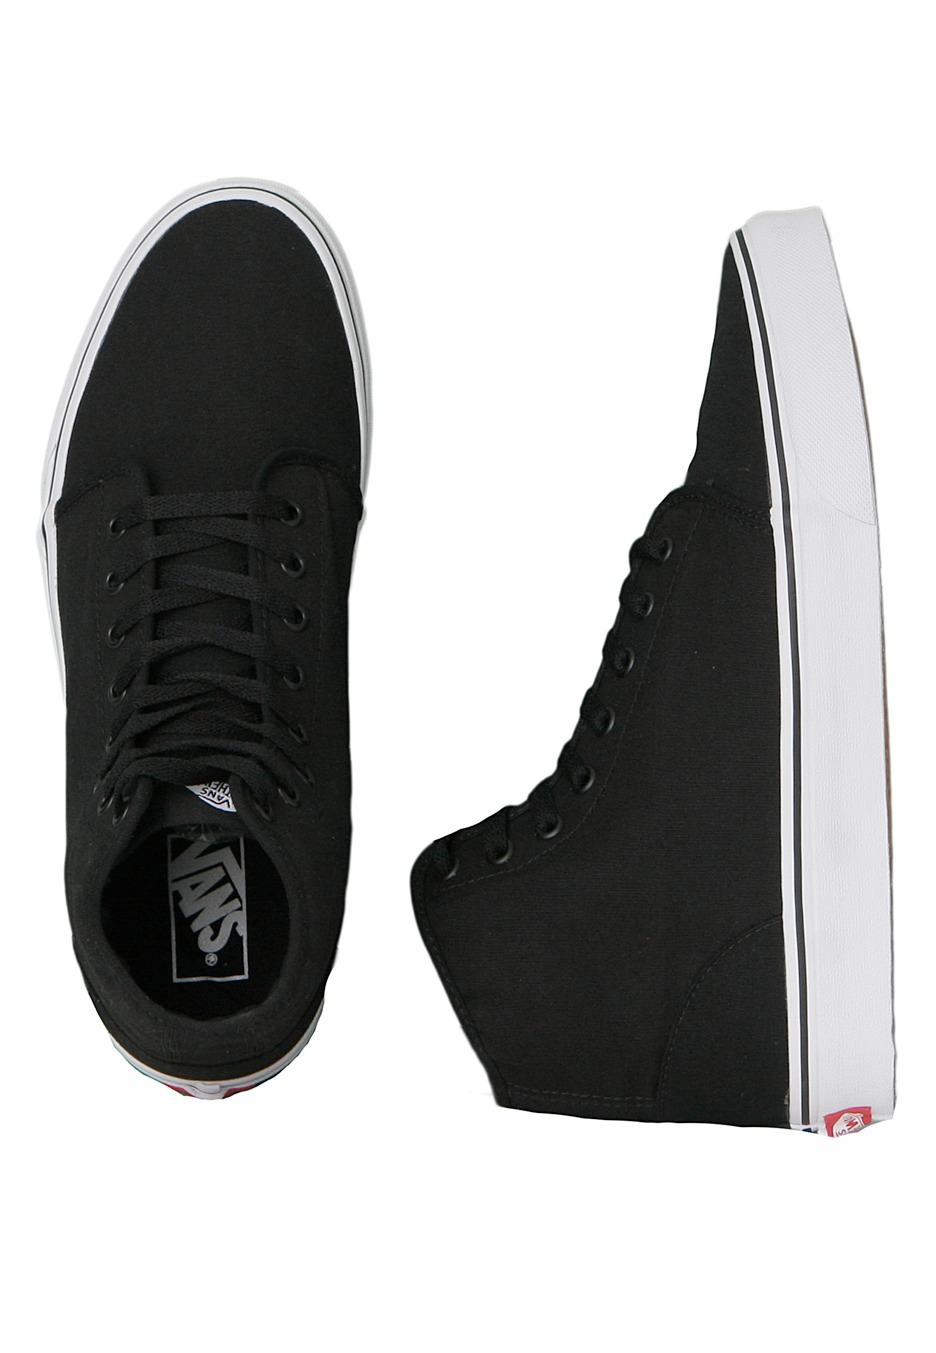 0d063126ca Vans - 106 Hi Black True White - Shoes - Impericon.com Worldwide